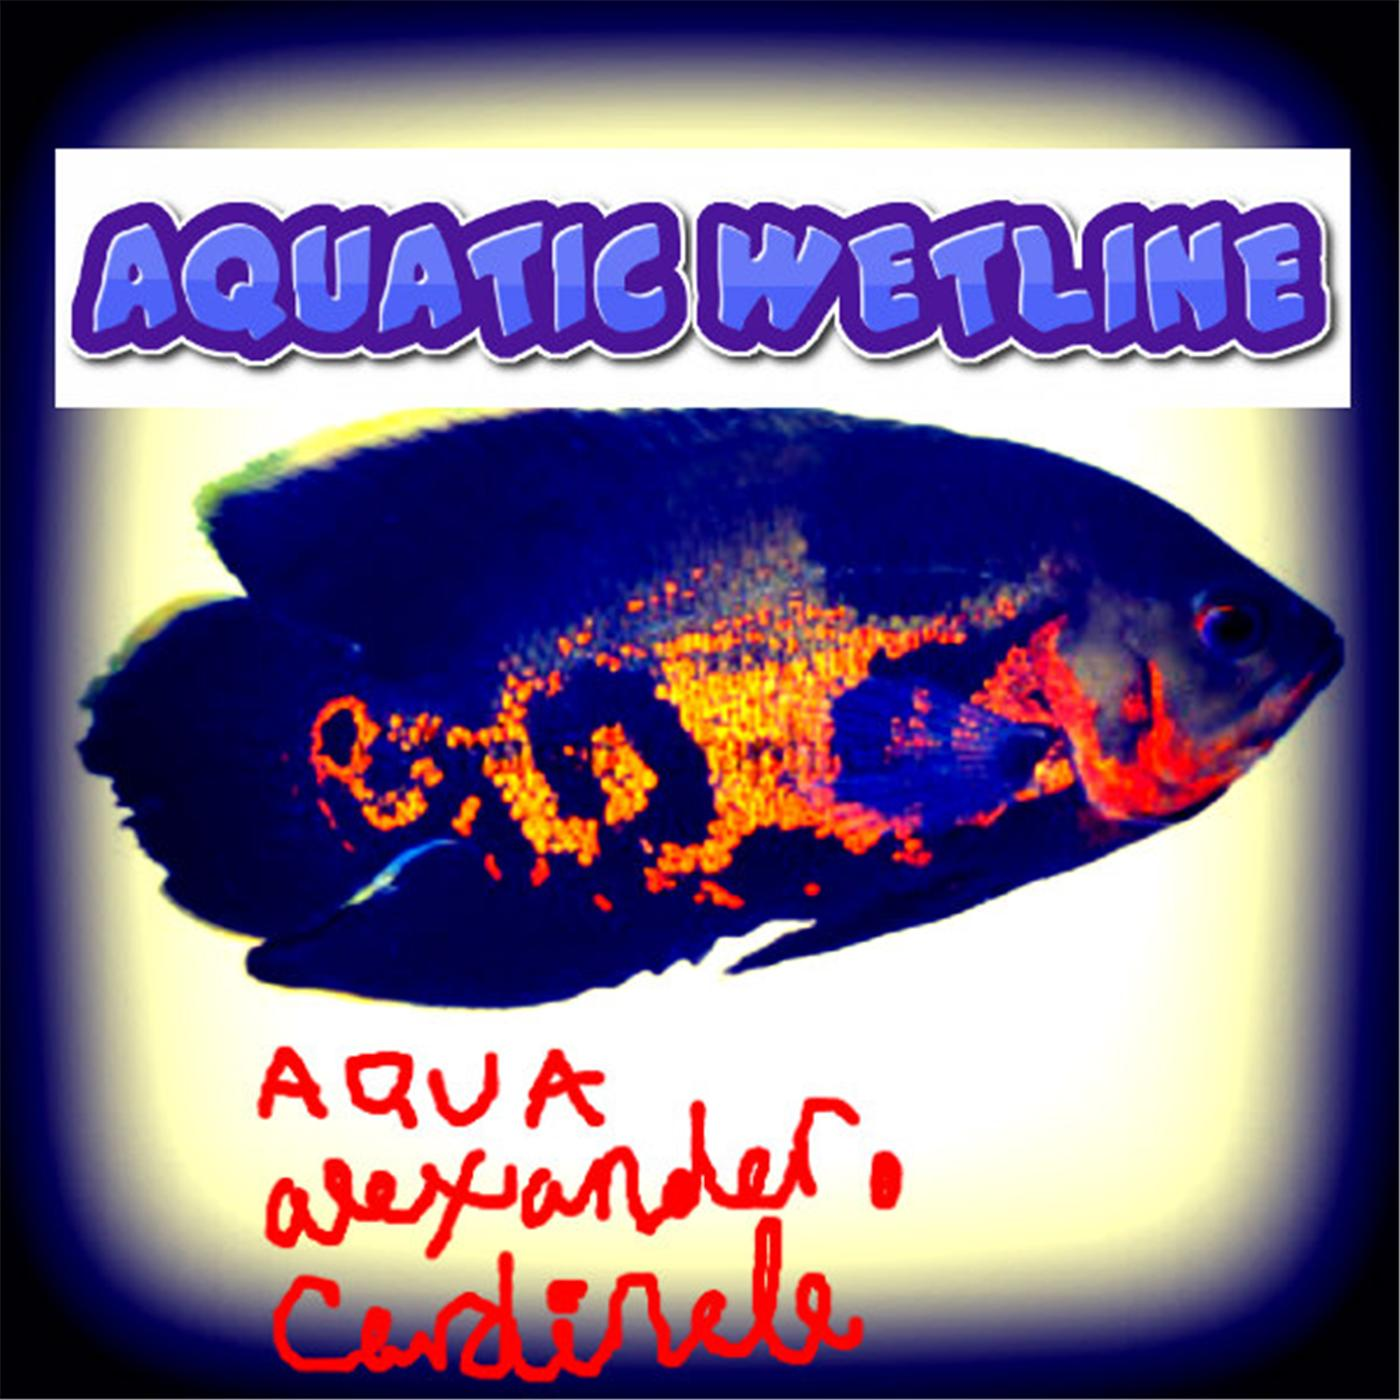 Aquatic Wetline with Aqua Alex